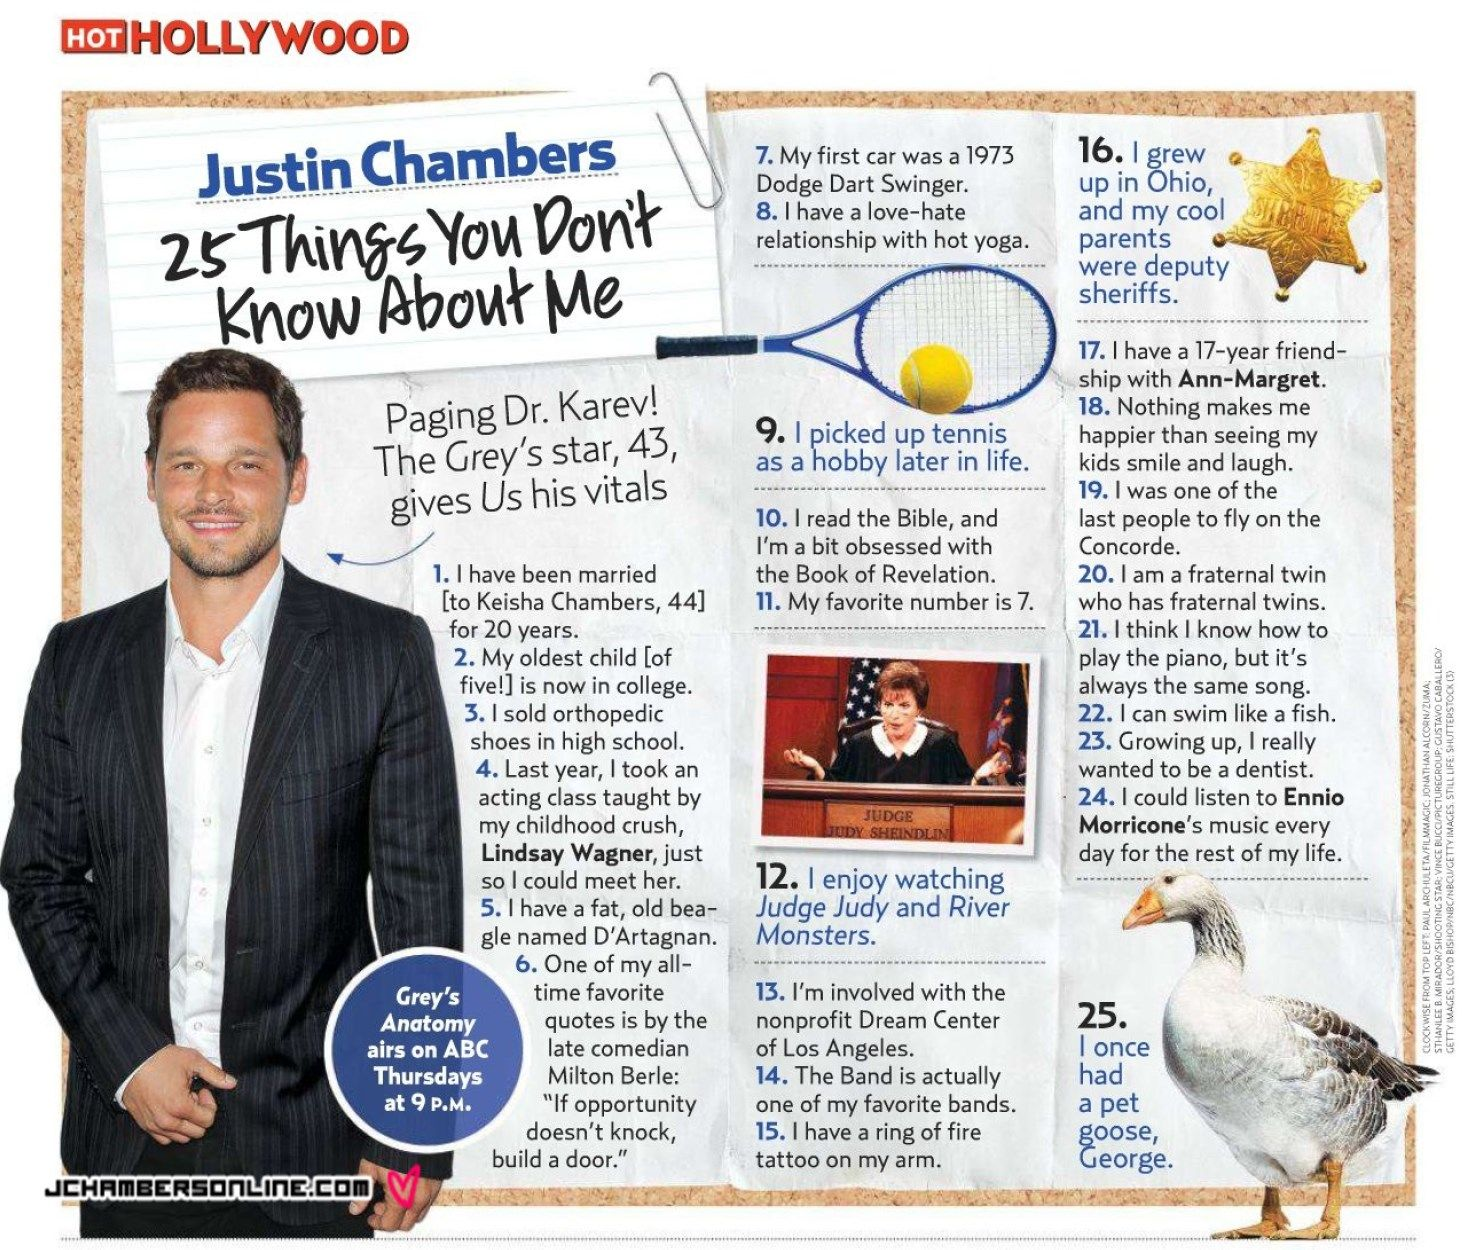 justin chambers 25 facts - Google Search   greys anatomy   Pinterest ...